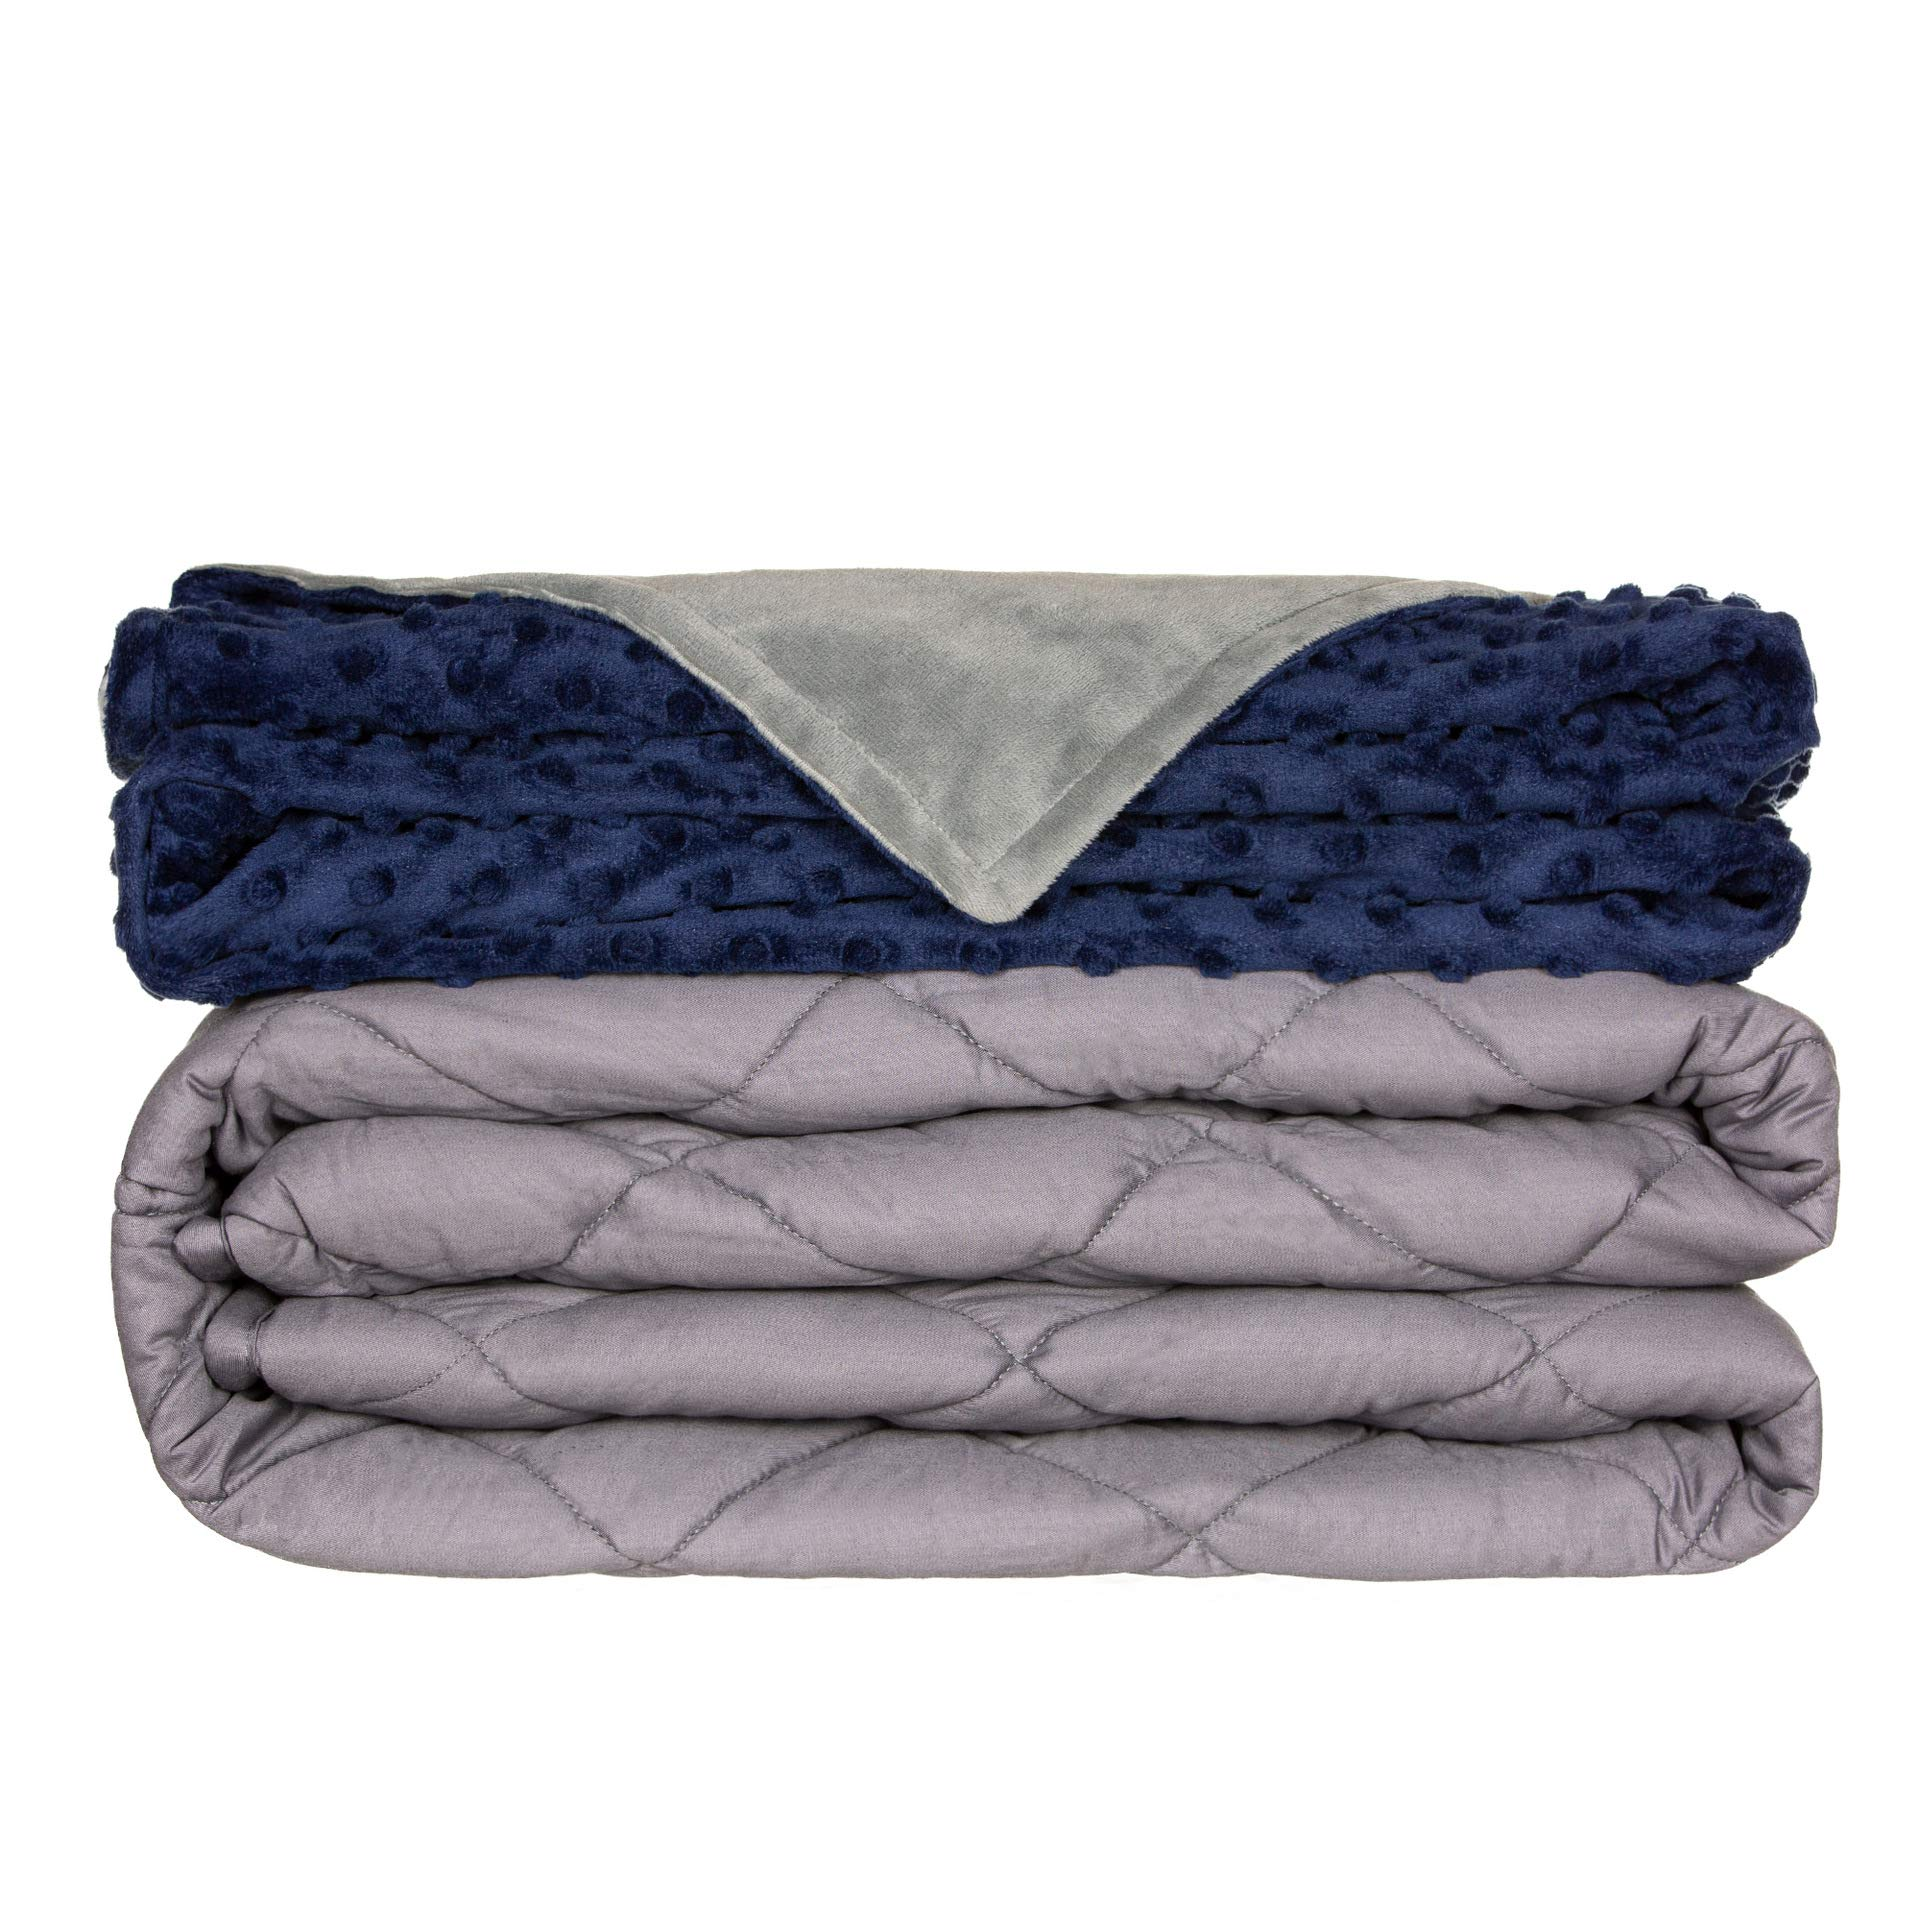 Comfamille Kids Weighted Blanket with Blue Removable Cover | 5-Layer Mosaic Sensory Blanket | Twin Queen King Sized Sleeping Blanket | 41''60'',7 Lbs